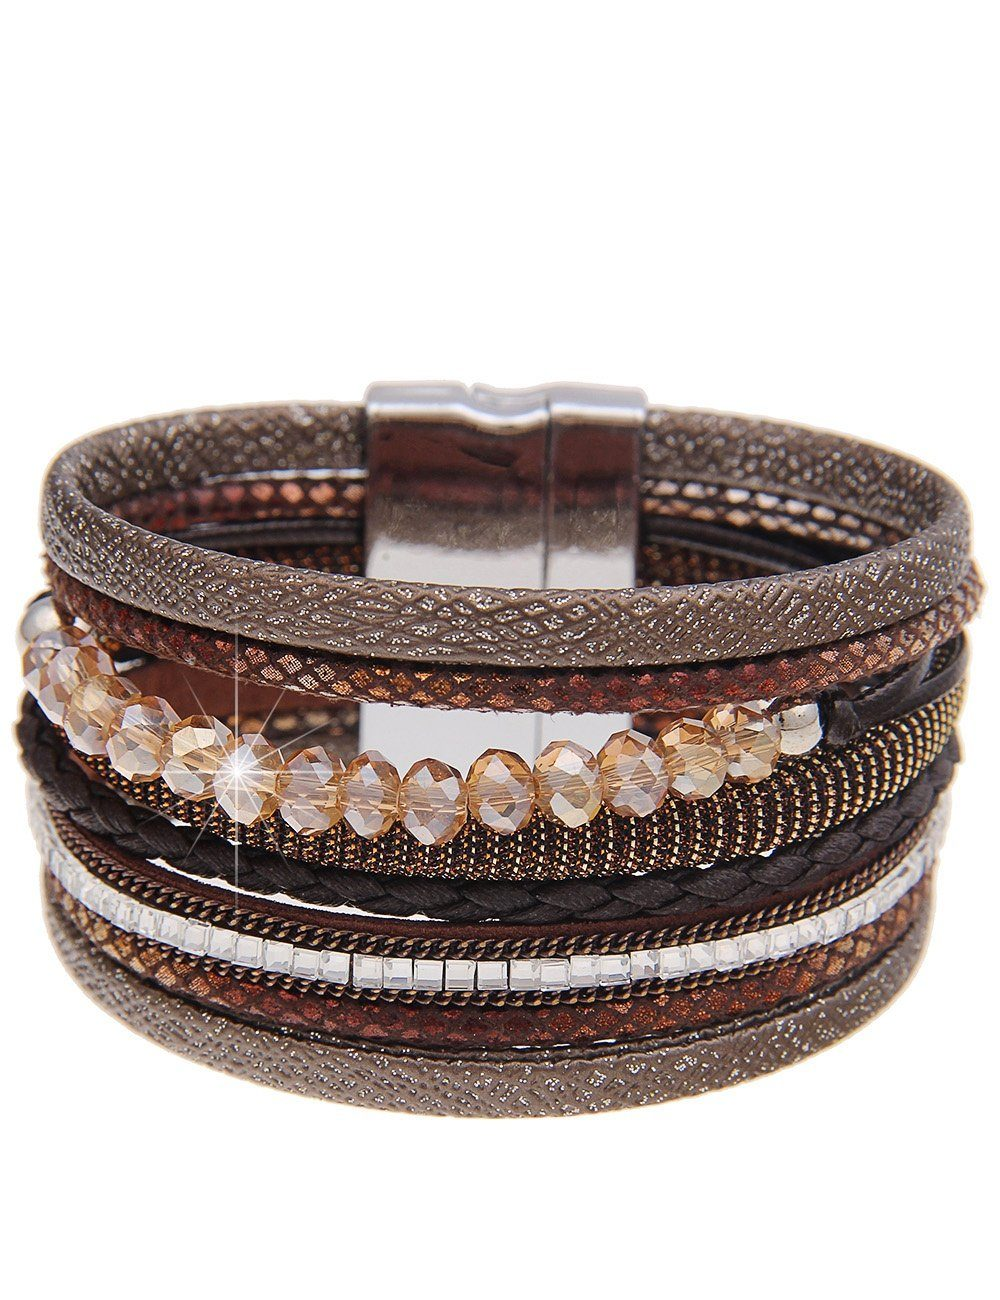 Leslii Armband mit tollem Mustermix